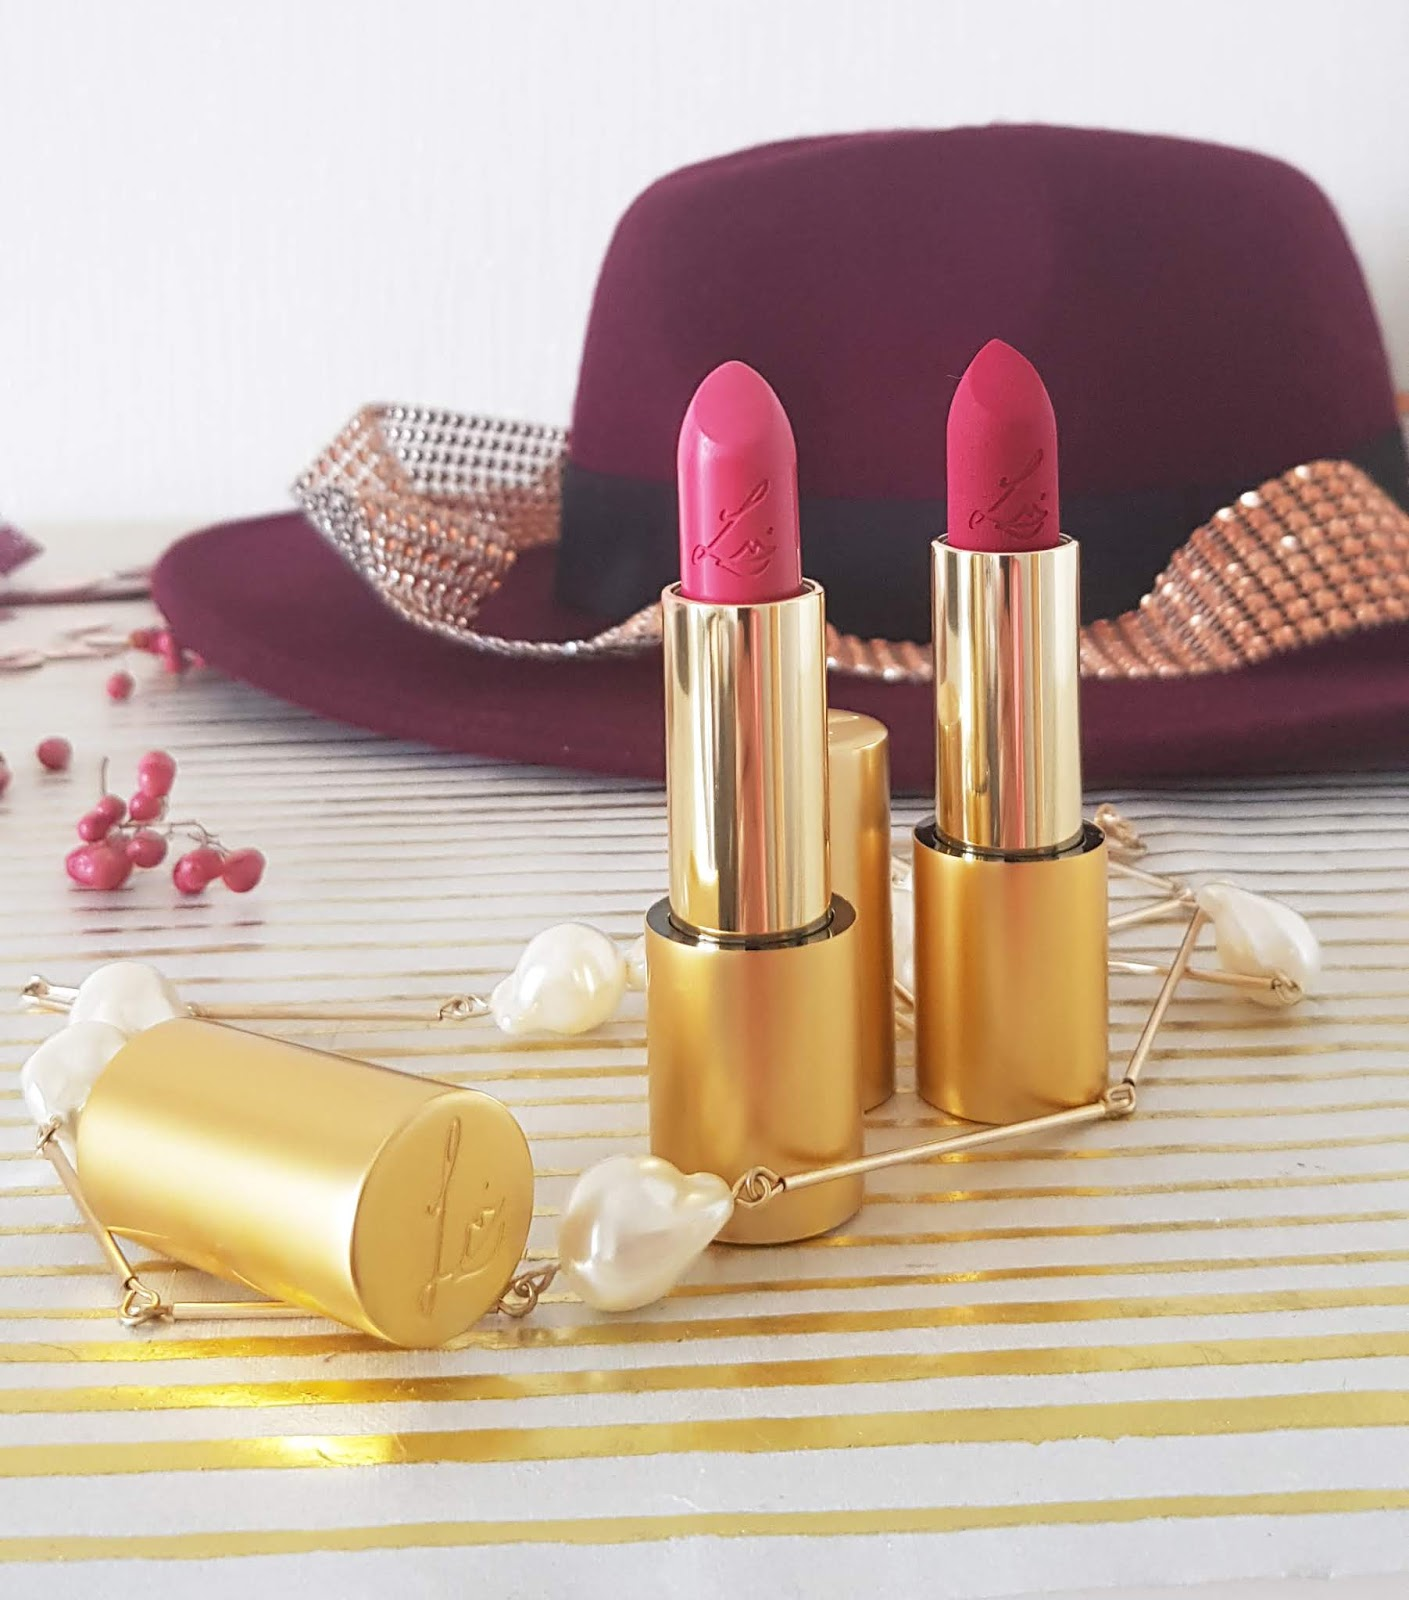 Luxurious New Pink Lipsticks from Lisa Eldridge